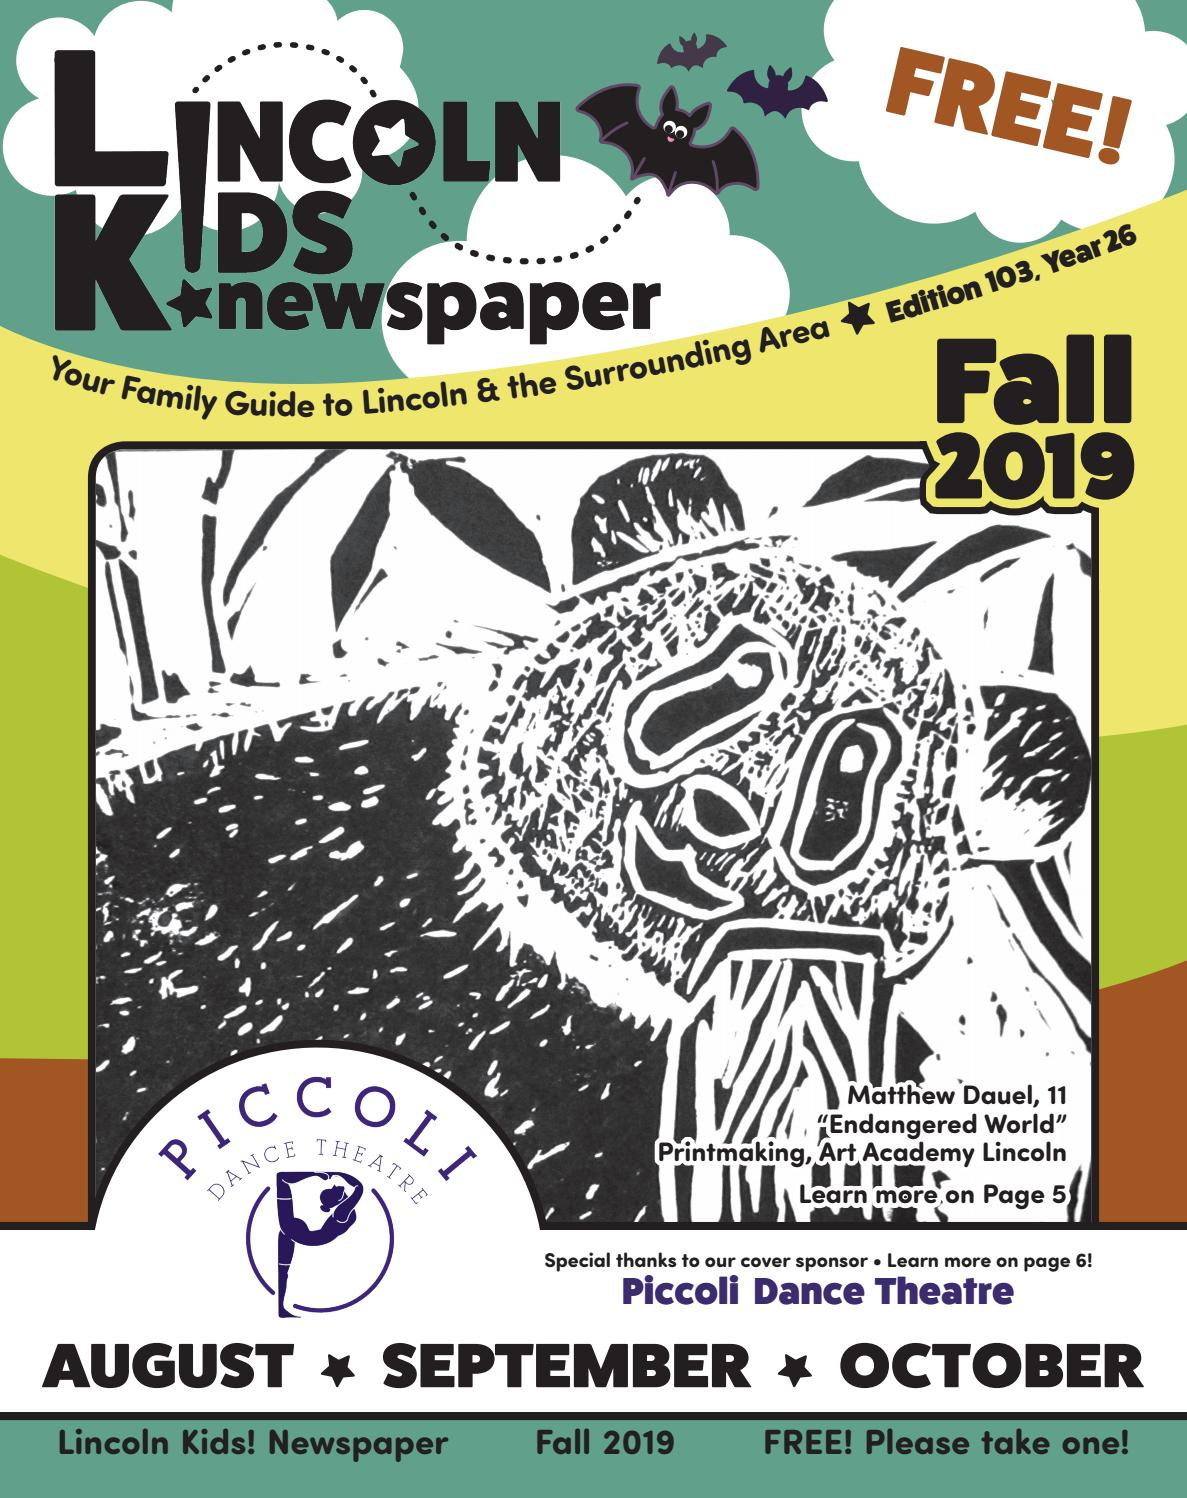 fall flower arrangements wth hay rasng kds and.htm lincoln kids  newspaper fall 2019 edition by lincoln kids  issuu  lincoln kids  newspaper fall 2019